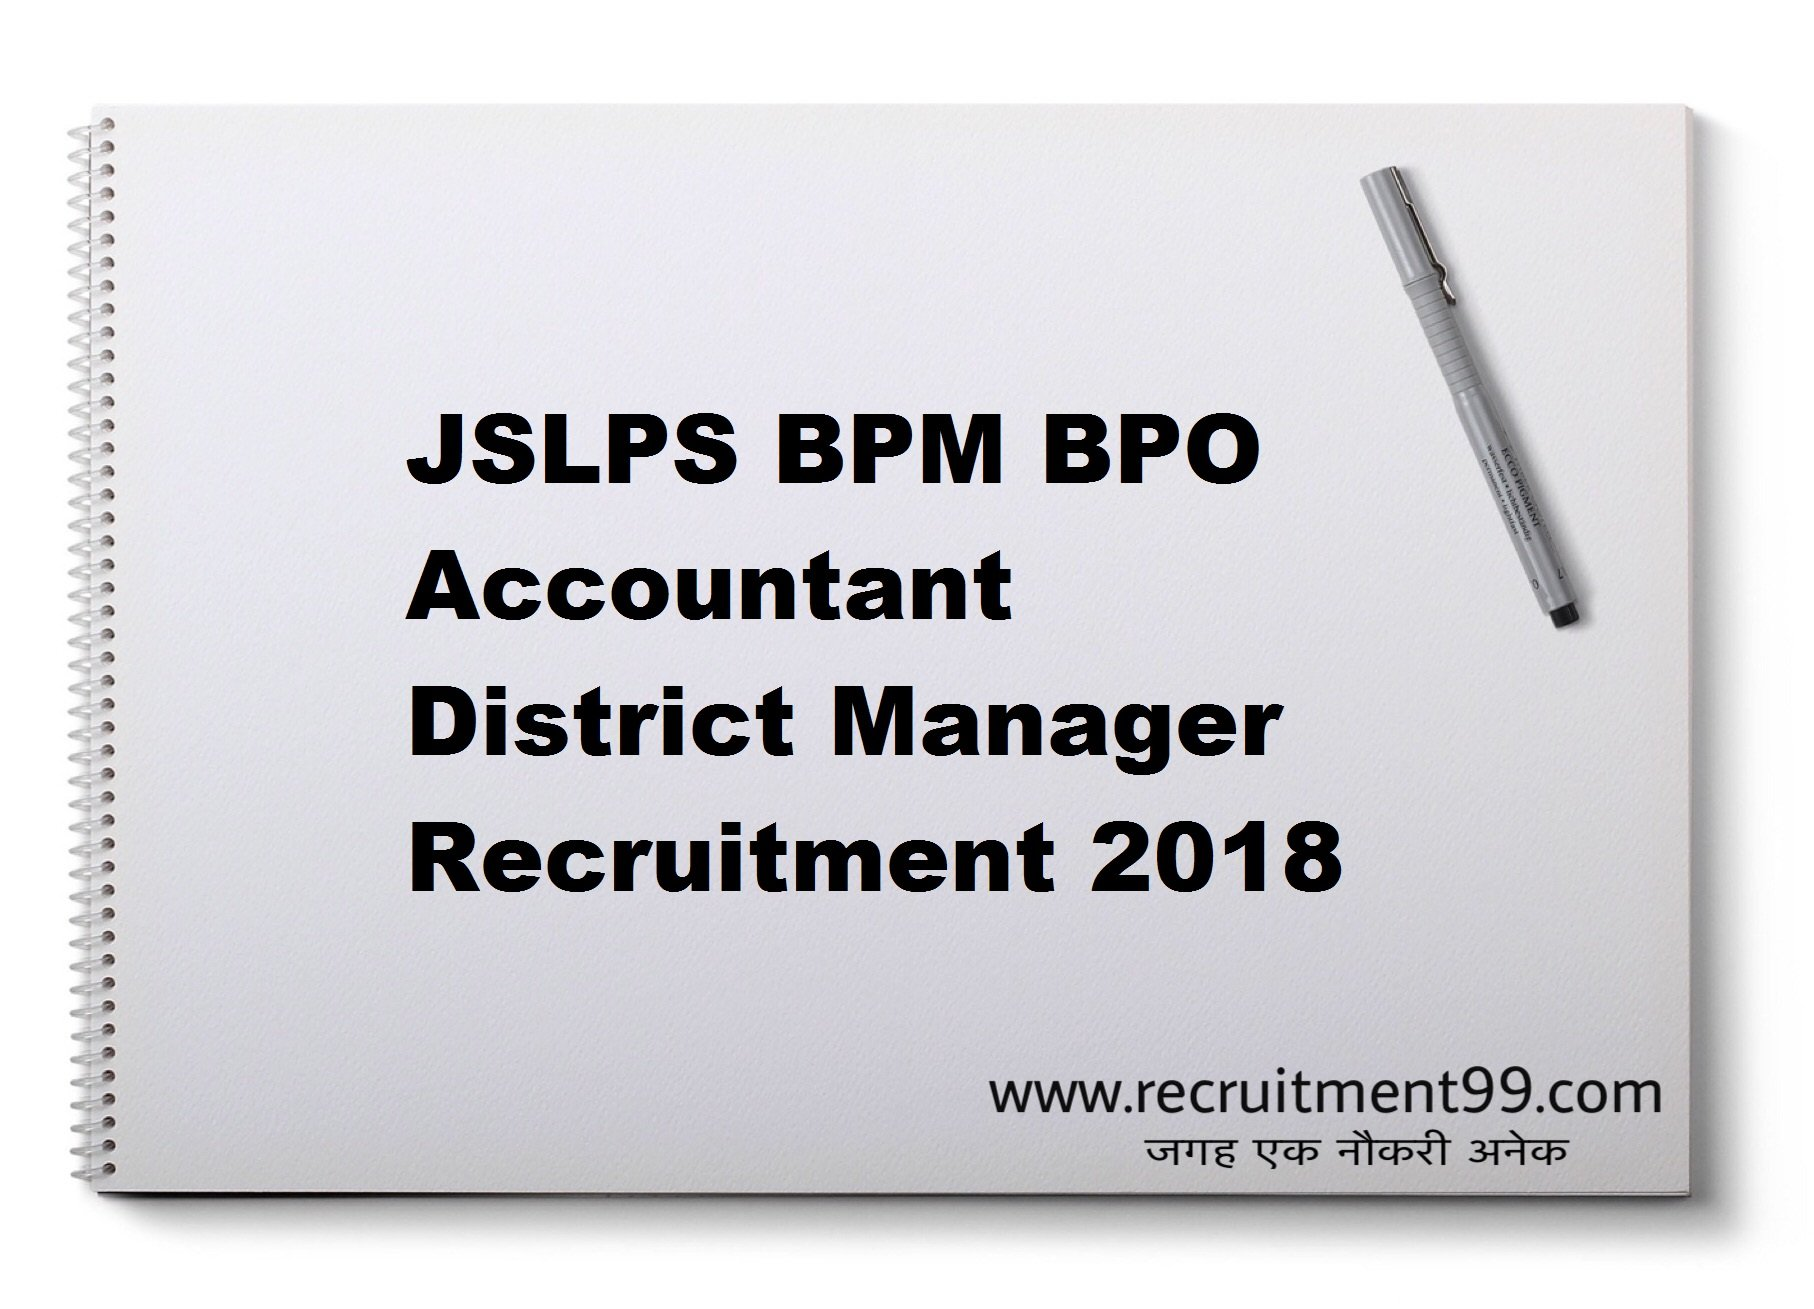 JSLPS BPM BPO Accountant District Manager Recruitment Admit Card Result 2018